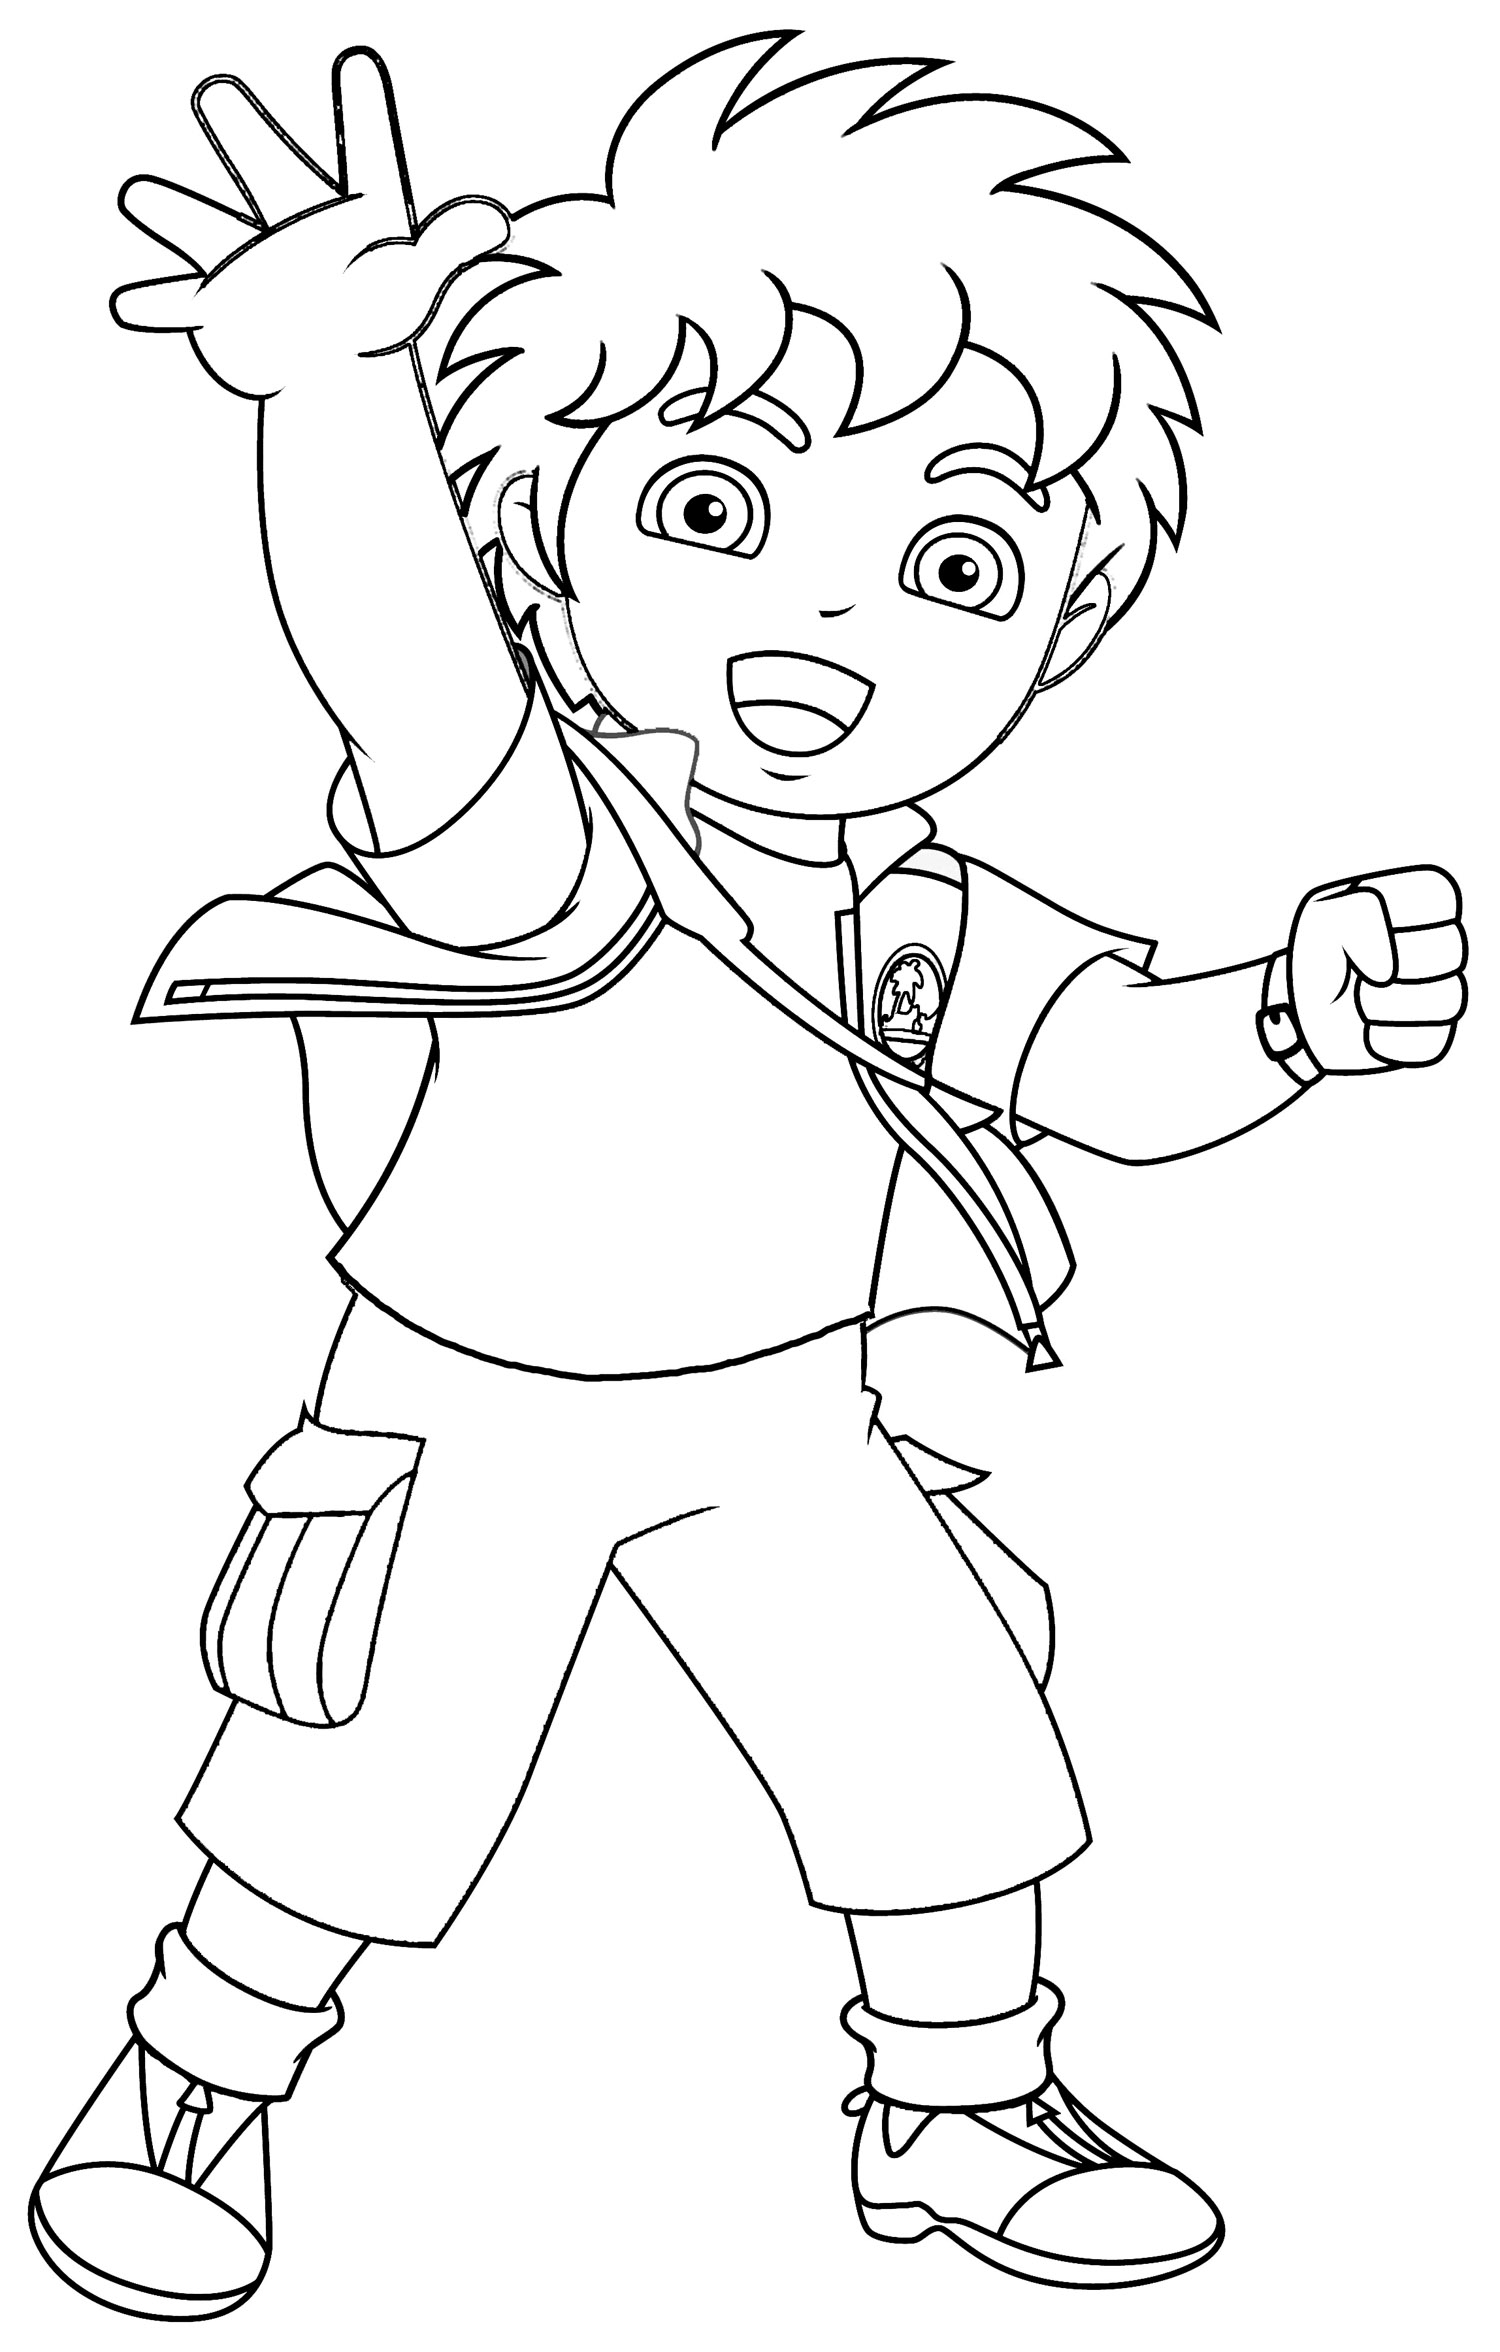 Free Printable Diego Coloring Pages For Kids   printable coloring pages for kids.